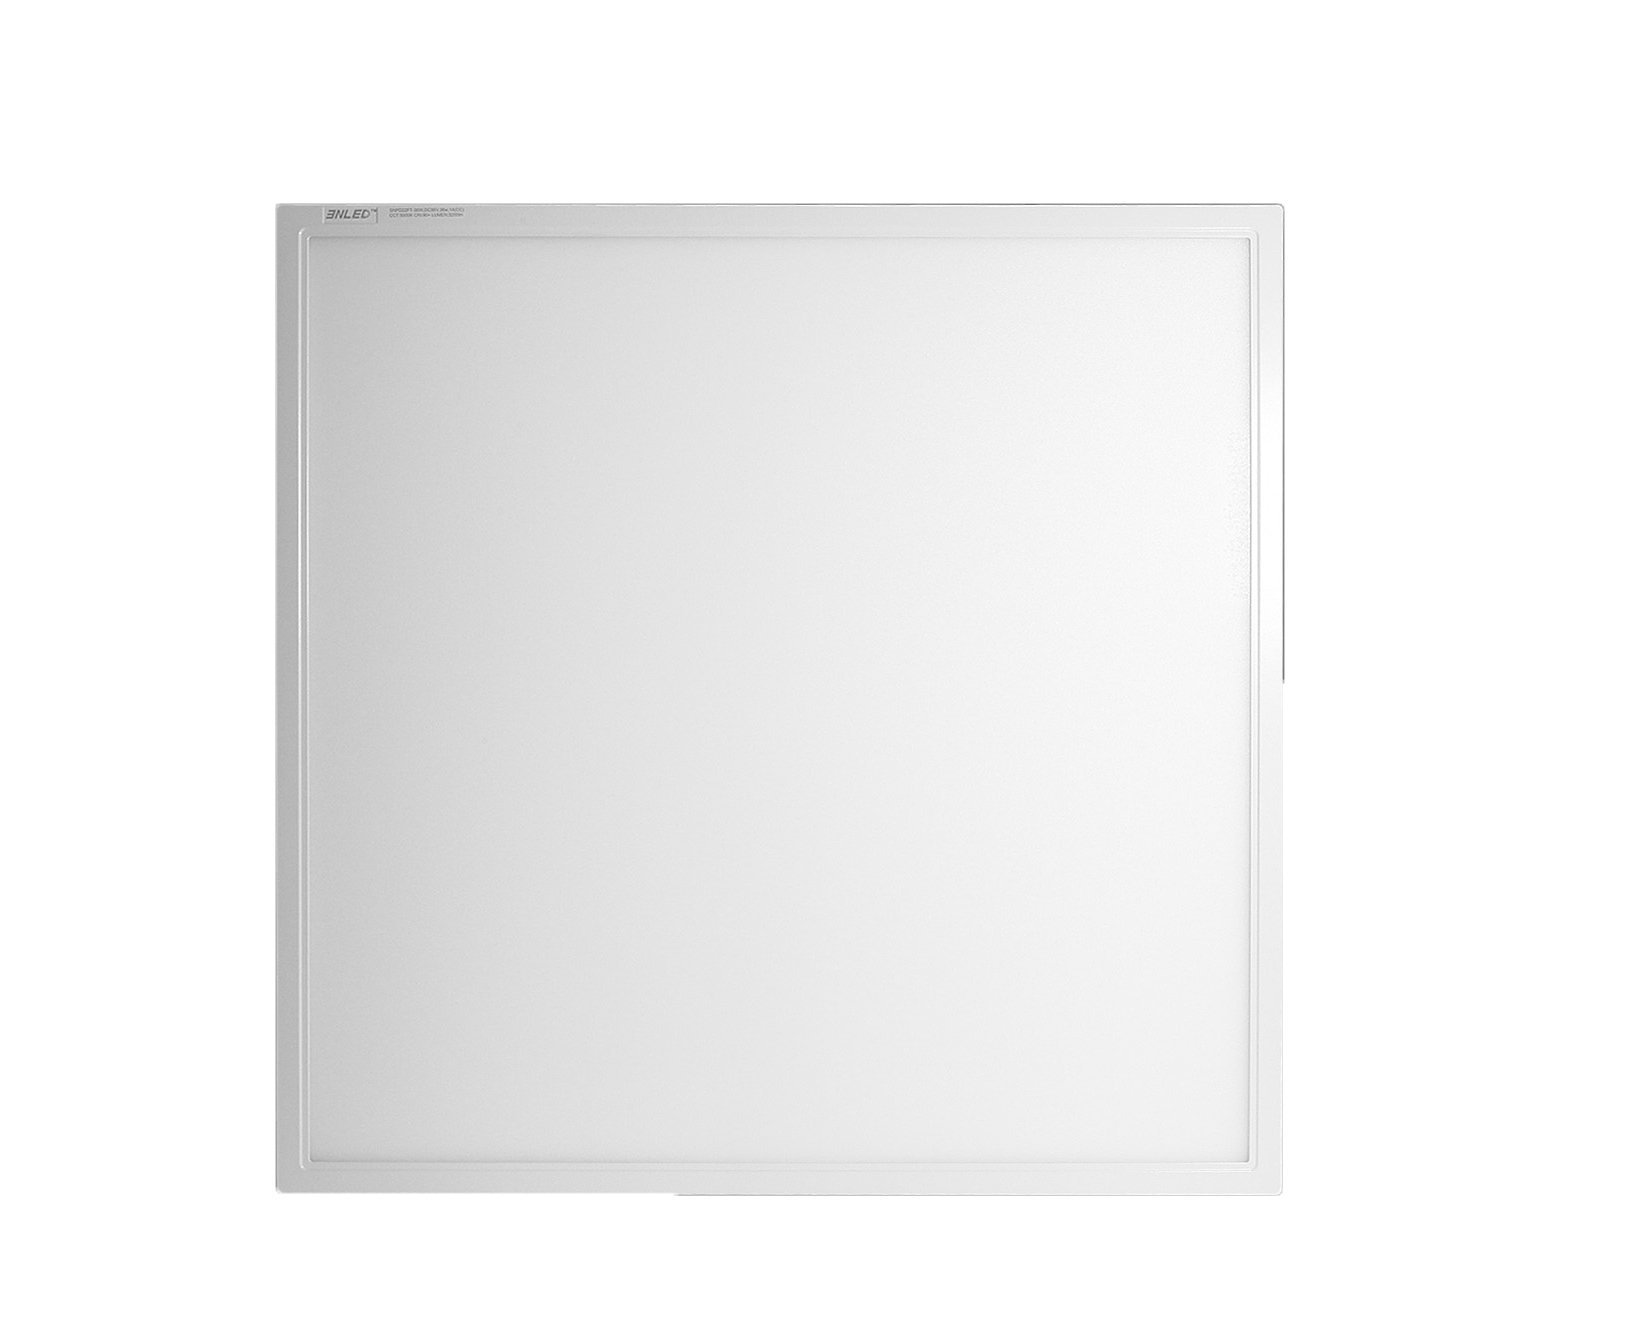 3NLED SNPD22FT-36W 36W LED Panel by 3nled